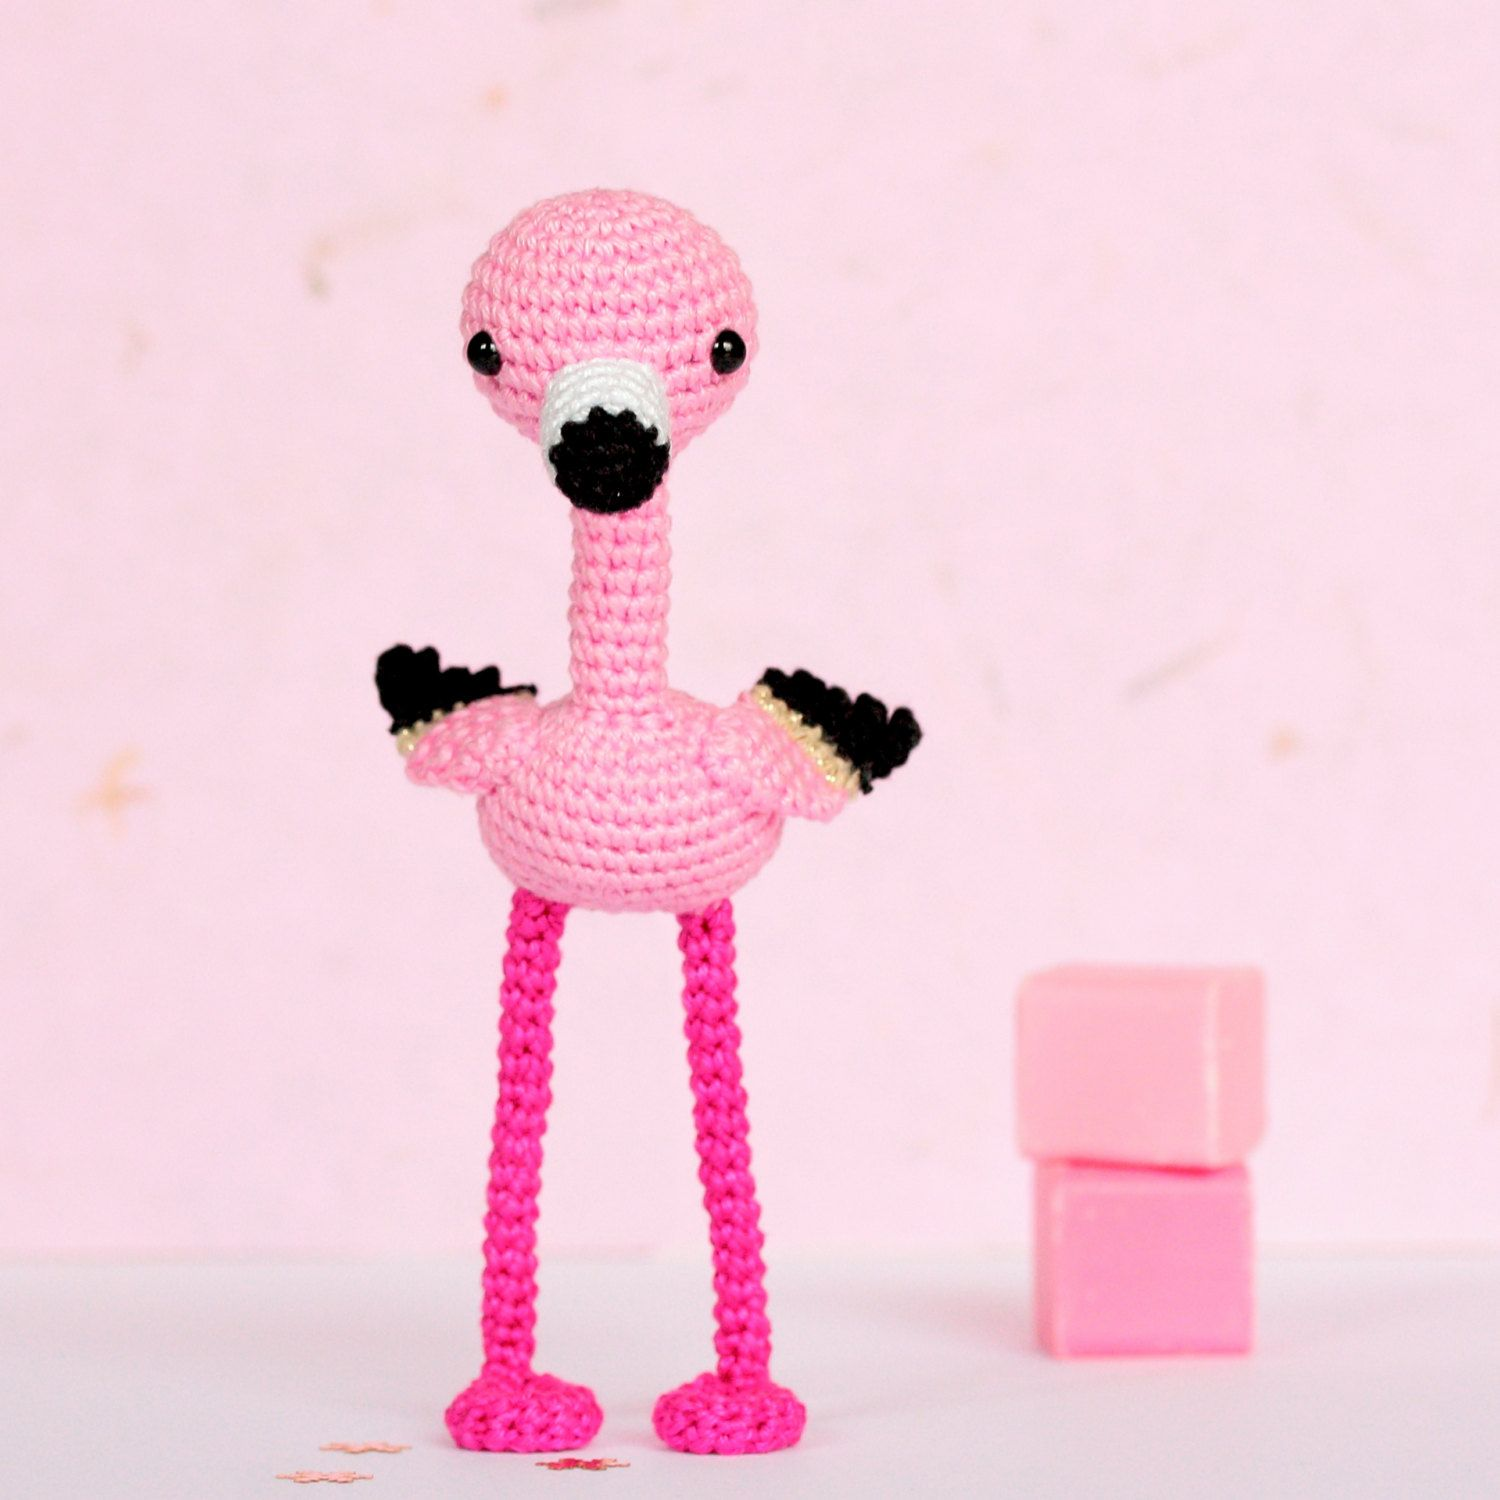 D co flamingo amigurumi flamant rose d co flamand rose par for Deco flamant rose